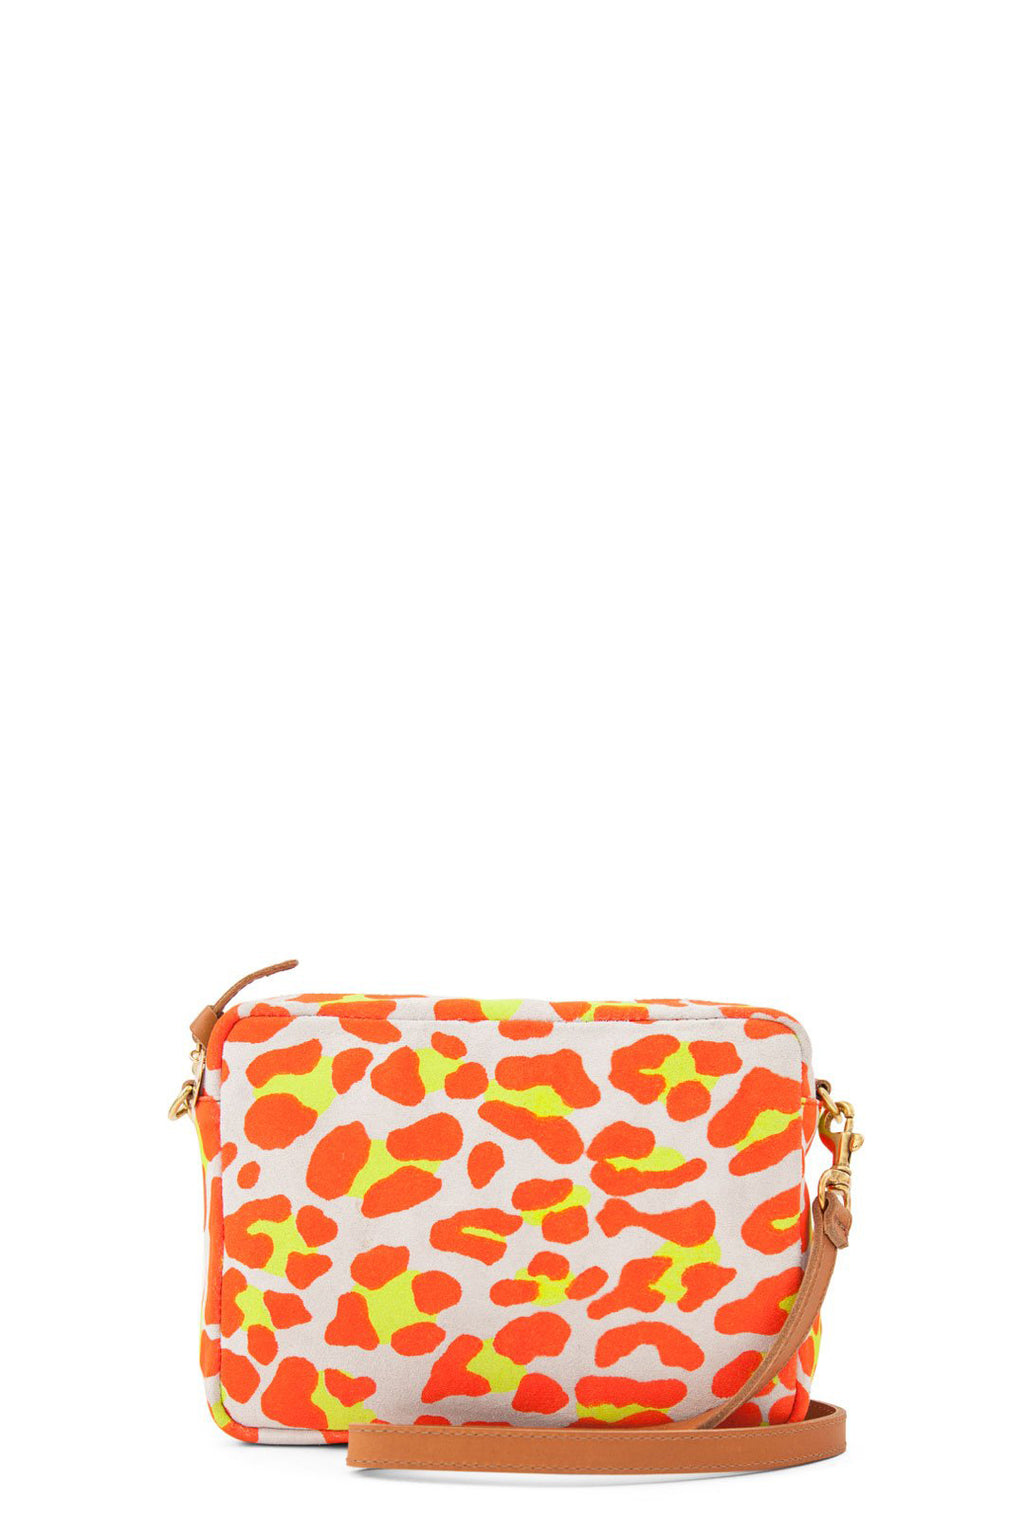 clare v. midi sac neon orange cat suede